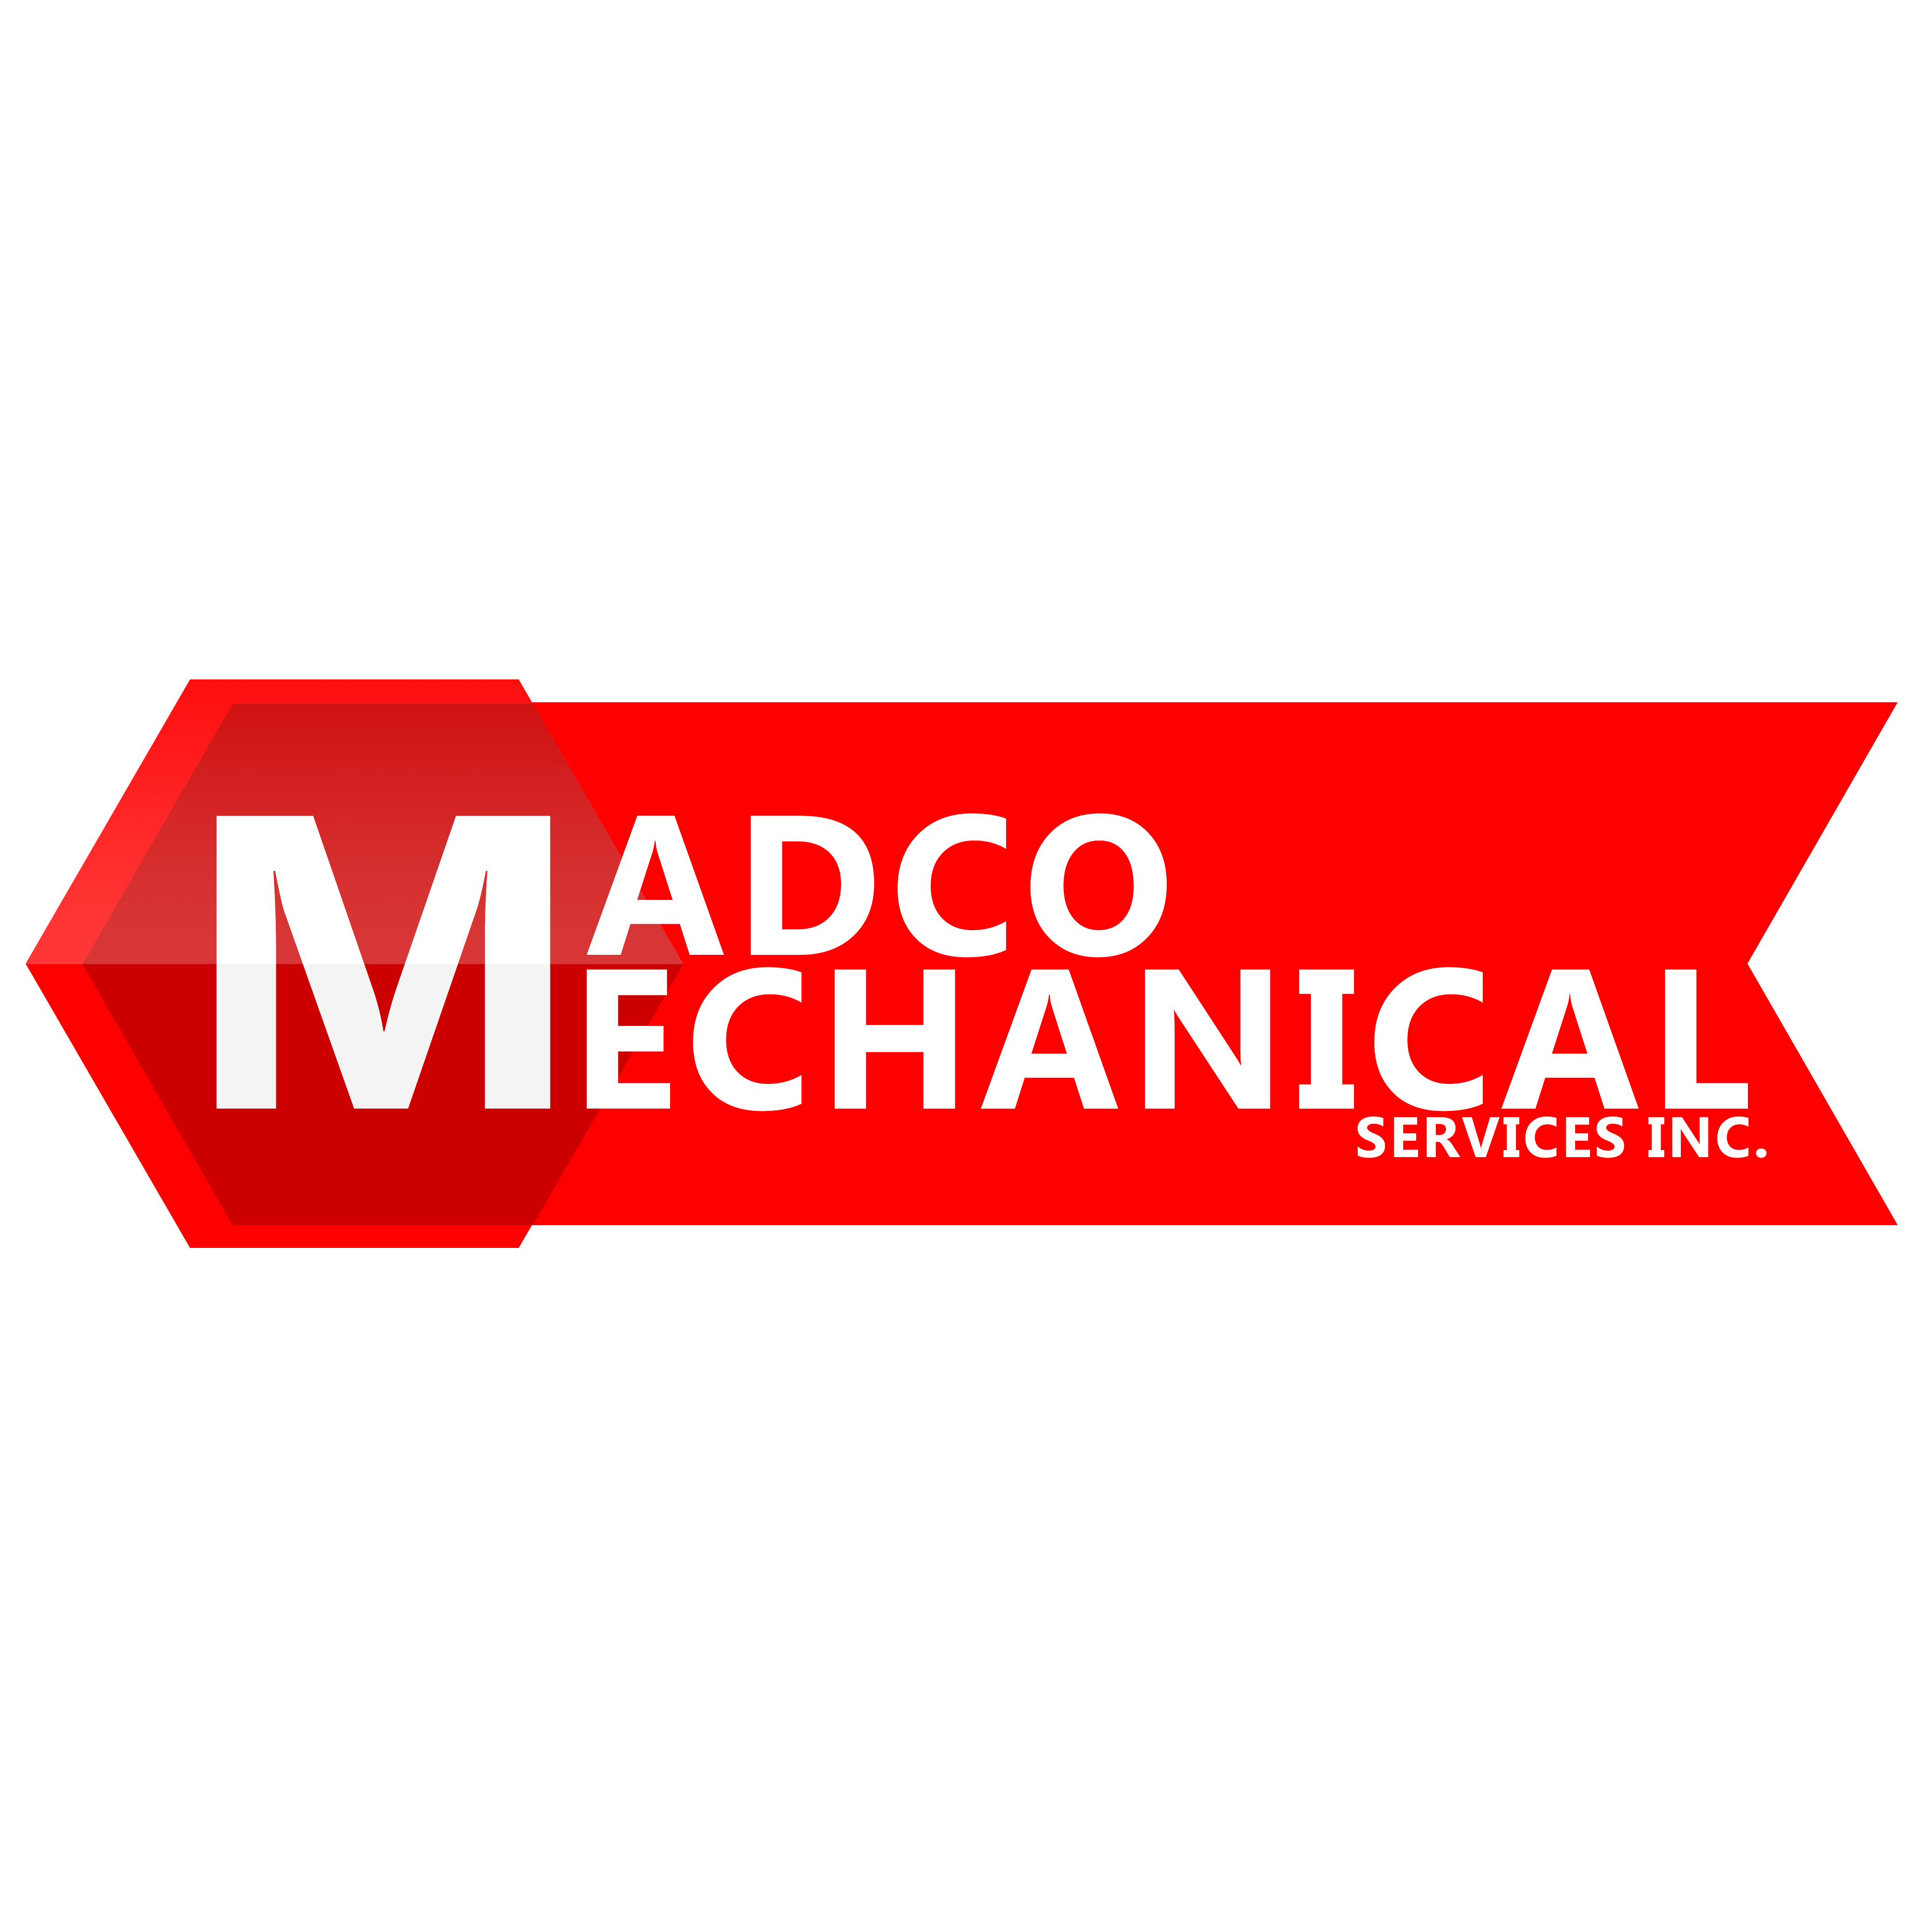 MADCO Mechanical Services Inc. image 4